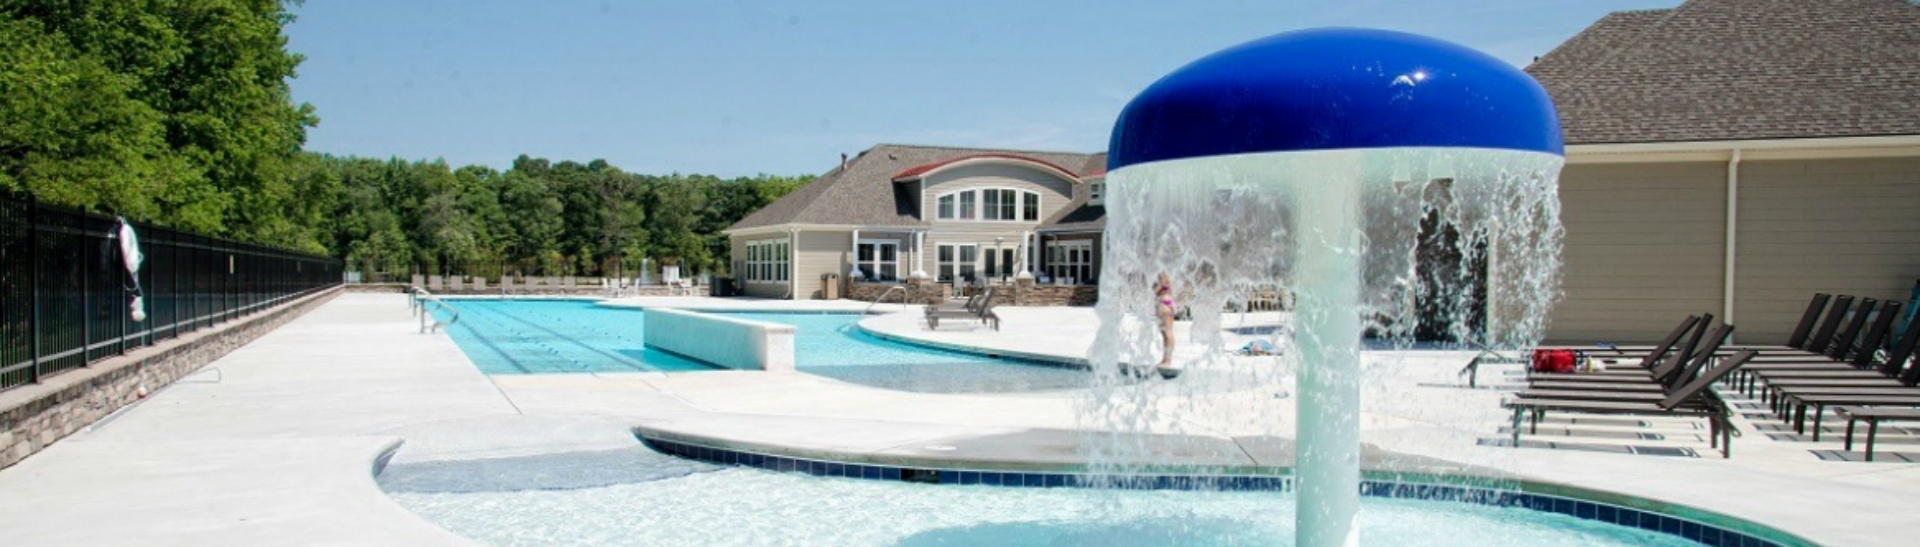 Quality pool care all season long!